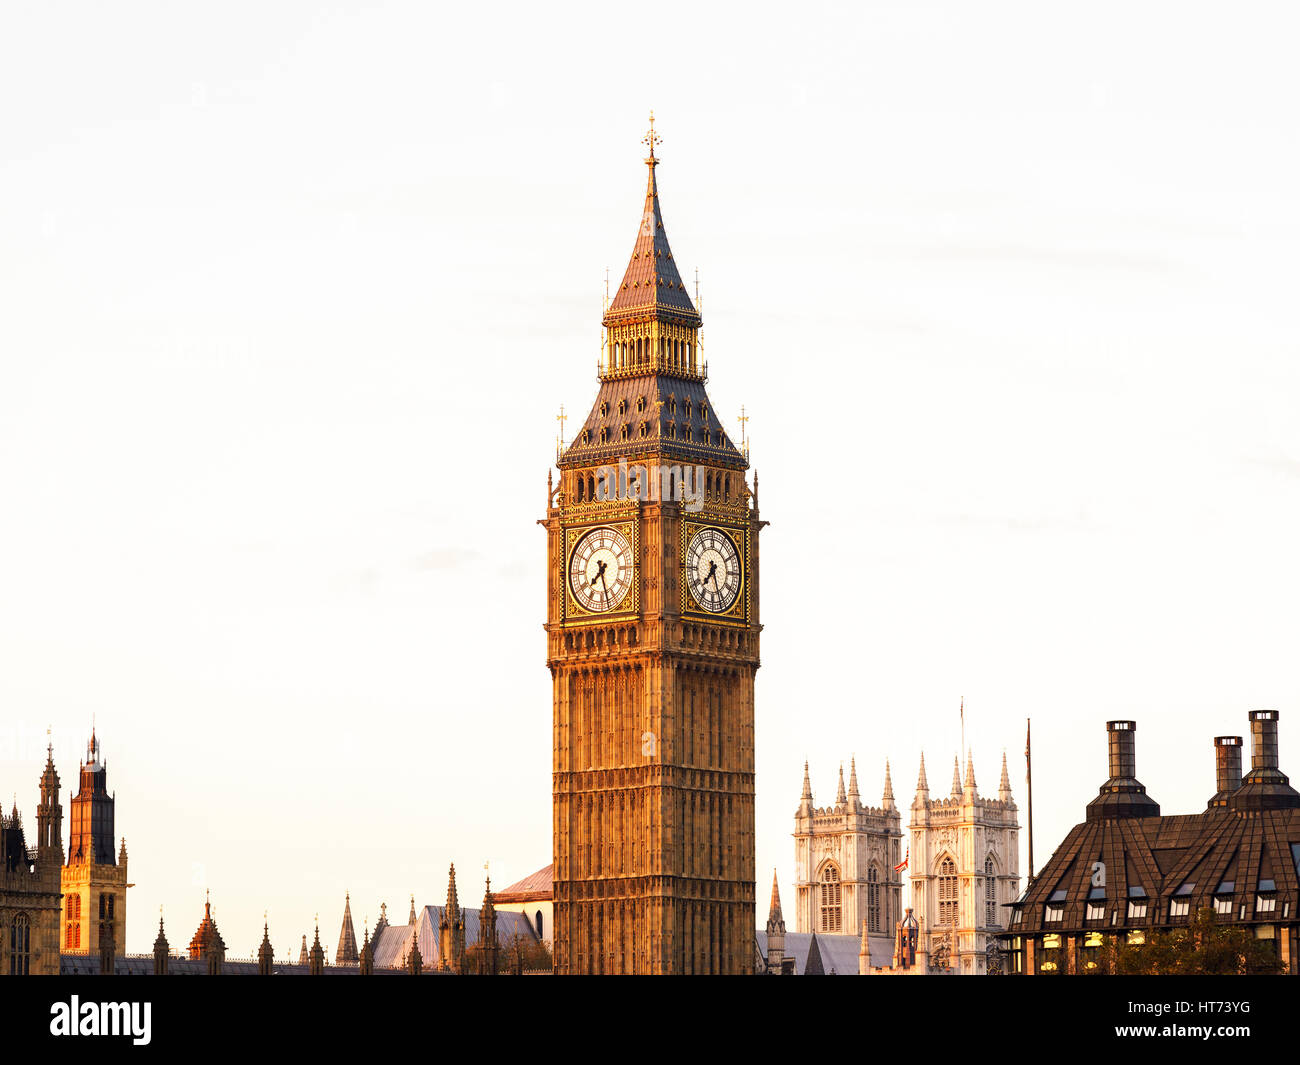 Big Ben and the Houses of Parliament, Westminster, London, UK - Stock Image